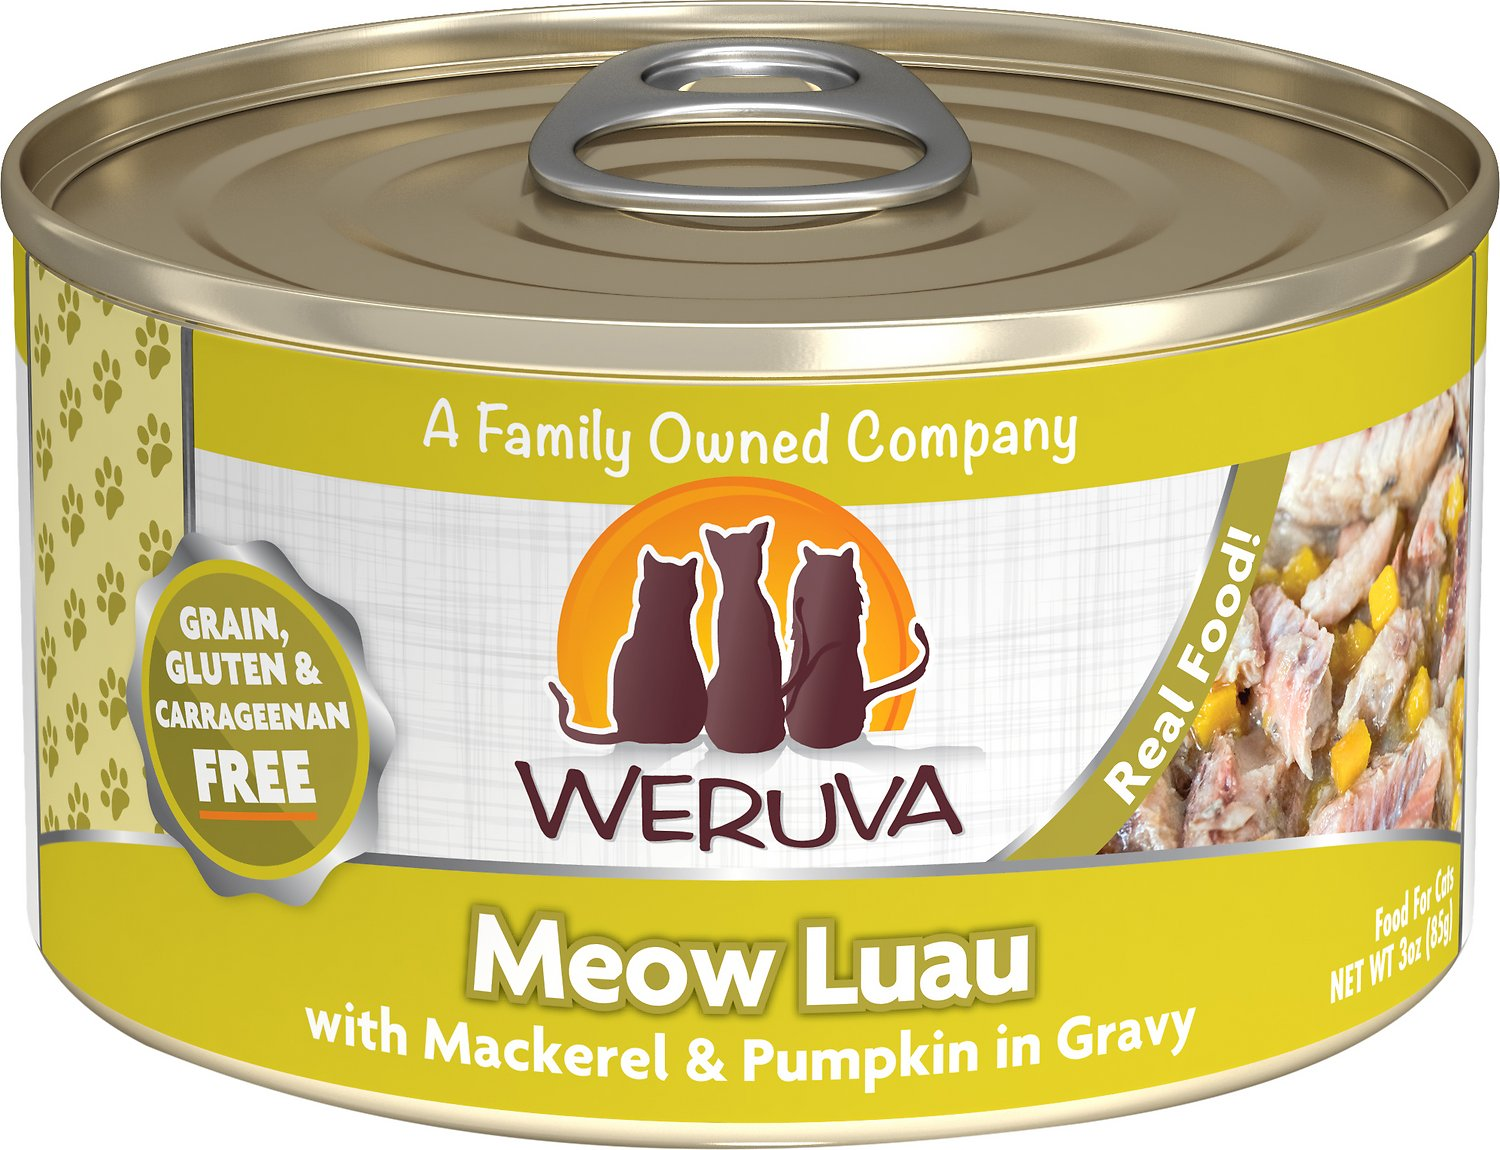 Weruva Cat Classic Meow Luau with Mackerel & Pumpkin Grain-Free Wet Cat Food Image